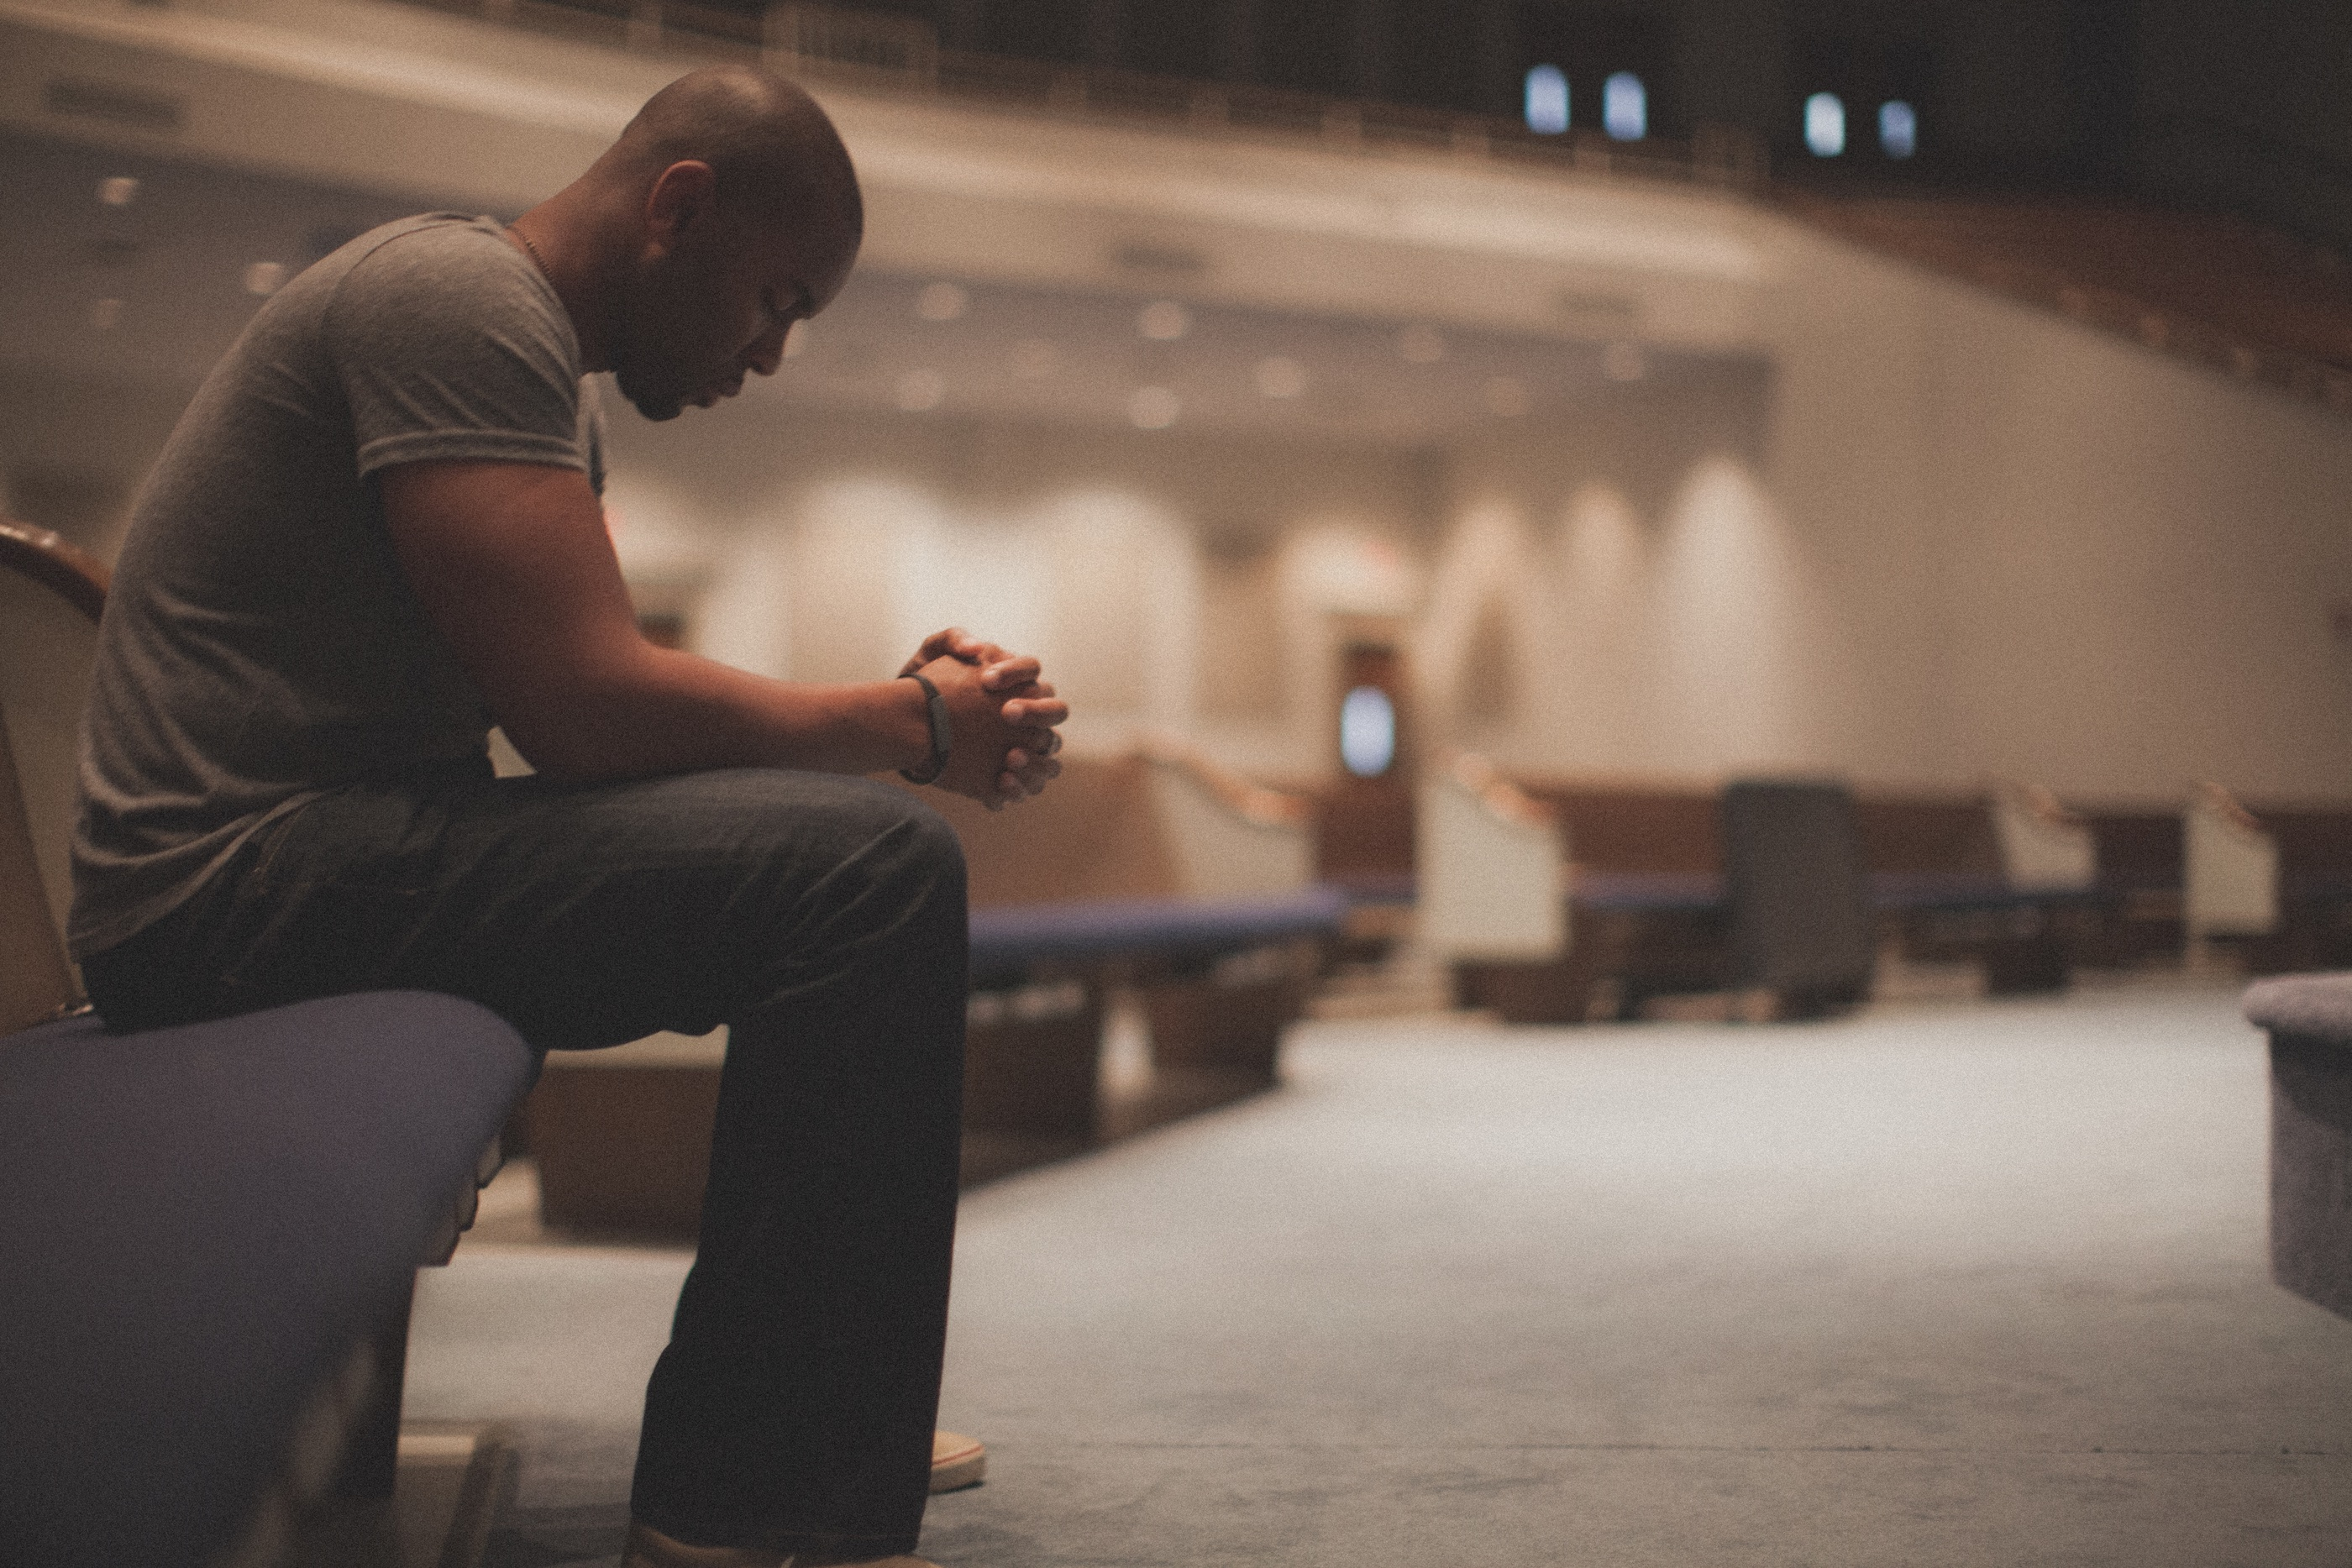 5 COMMON STRESSORS PASTORS STRUGGLE WITH